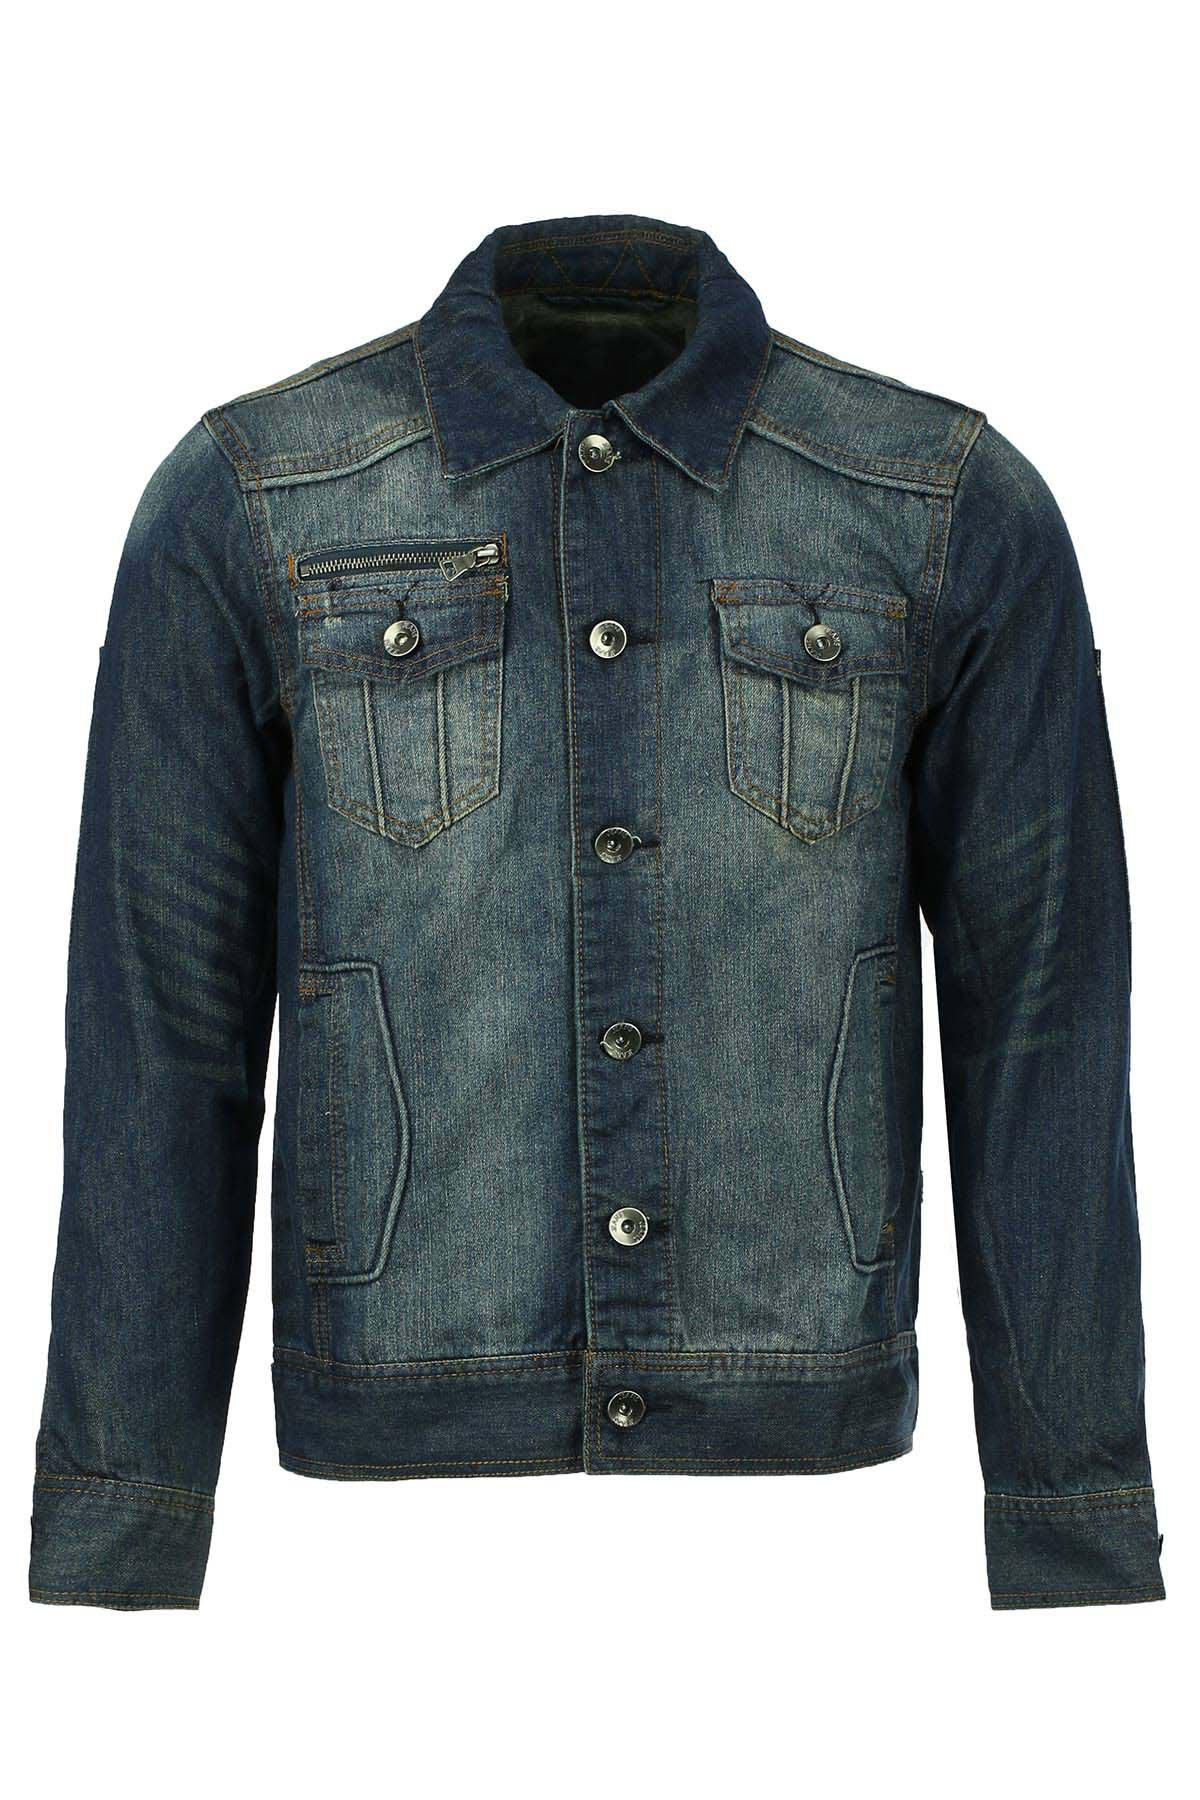 Turn-Down Collar Bleach Wash Flap Patch Pocket Long Sleeve Men's Denim Jacket